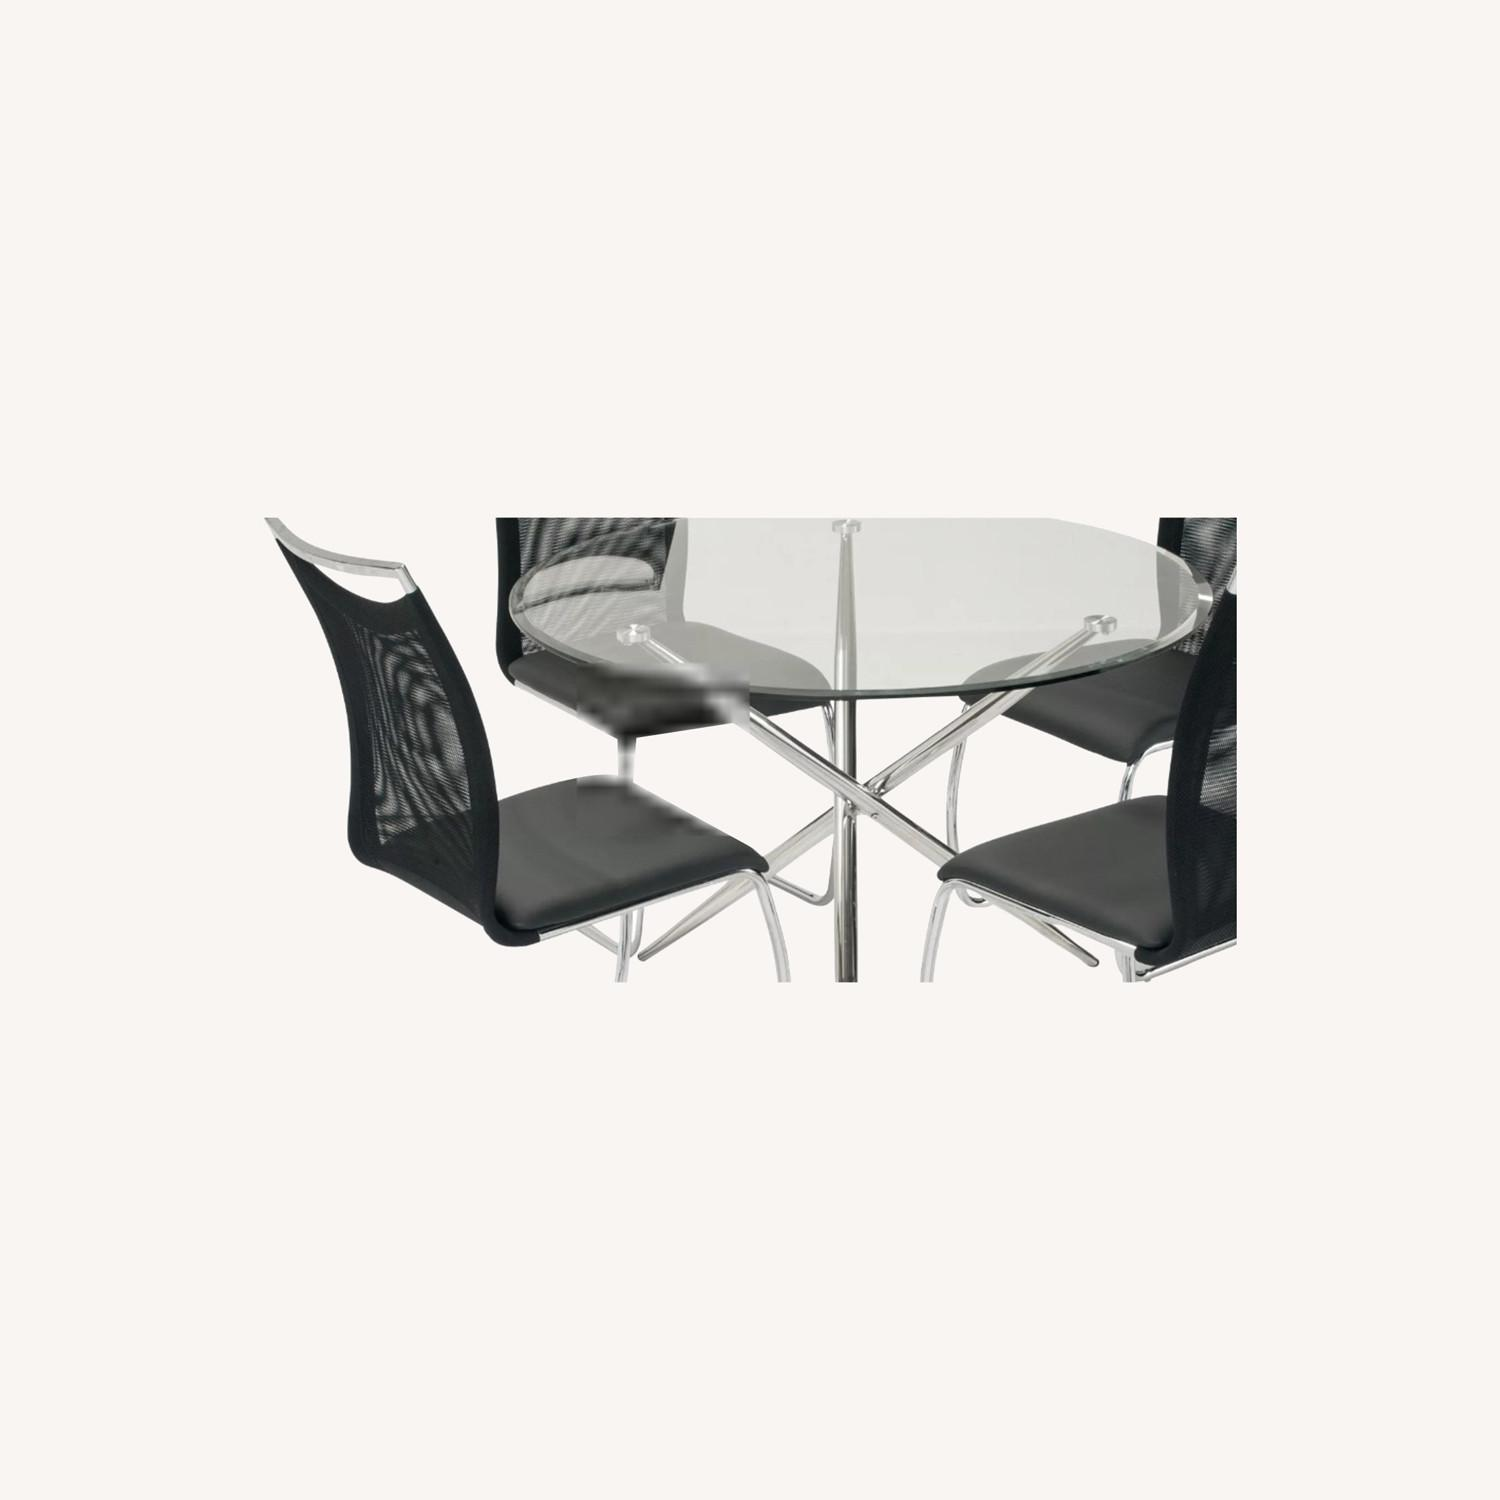 Raymour & Flanigan Glass Circular Table - 4 Chairs - image-0